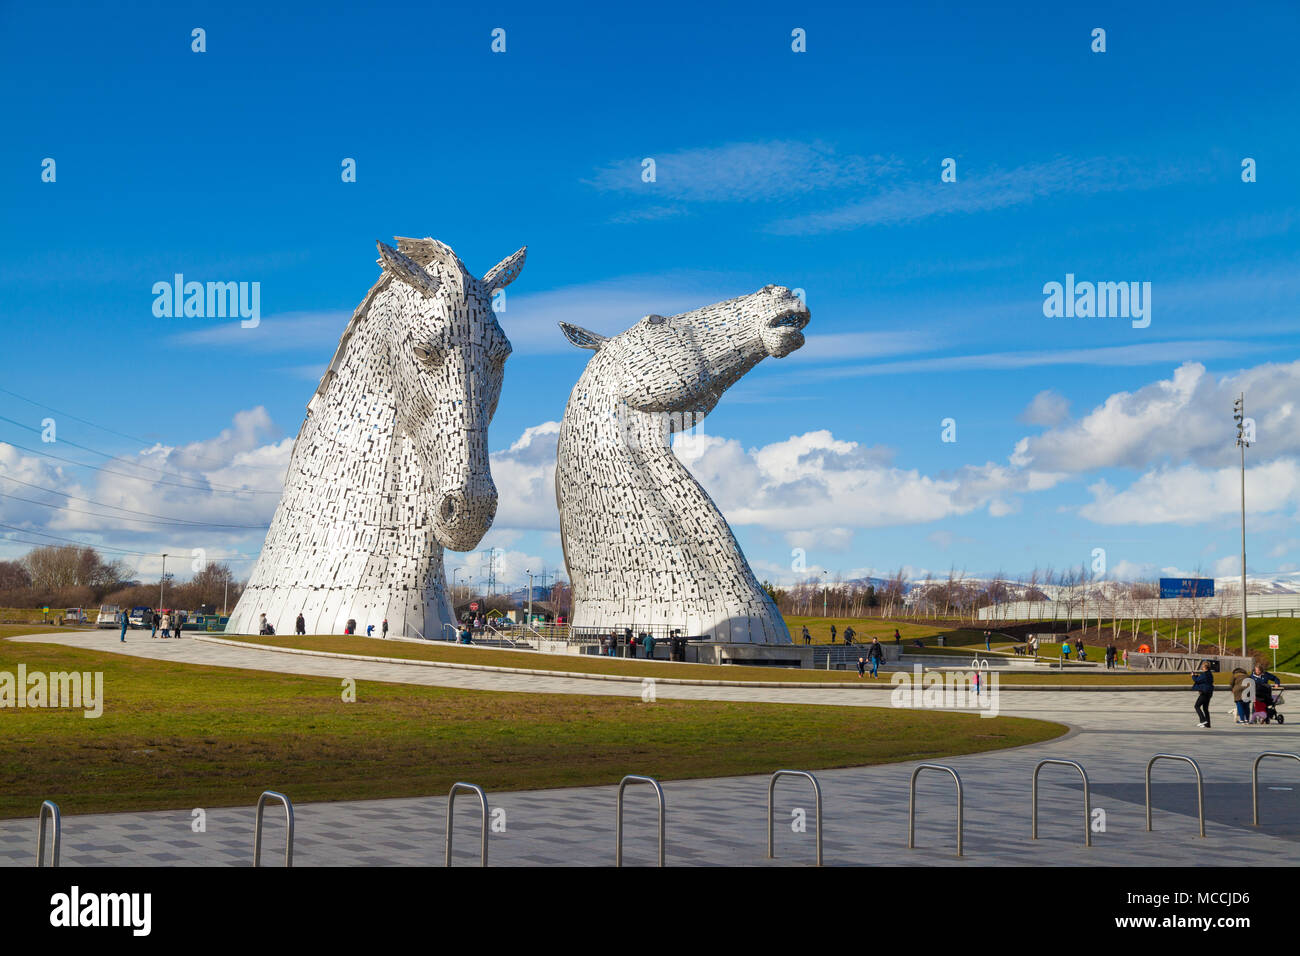 The Kelpies 30-metre-high horse-head sculptures at the Helix centre near Falkirk Scotland - Stock Image